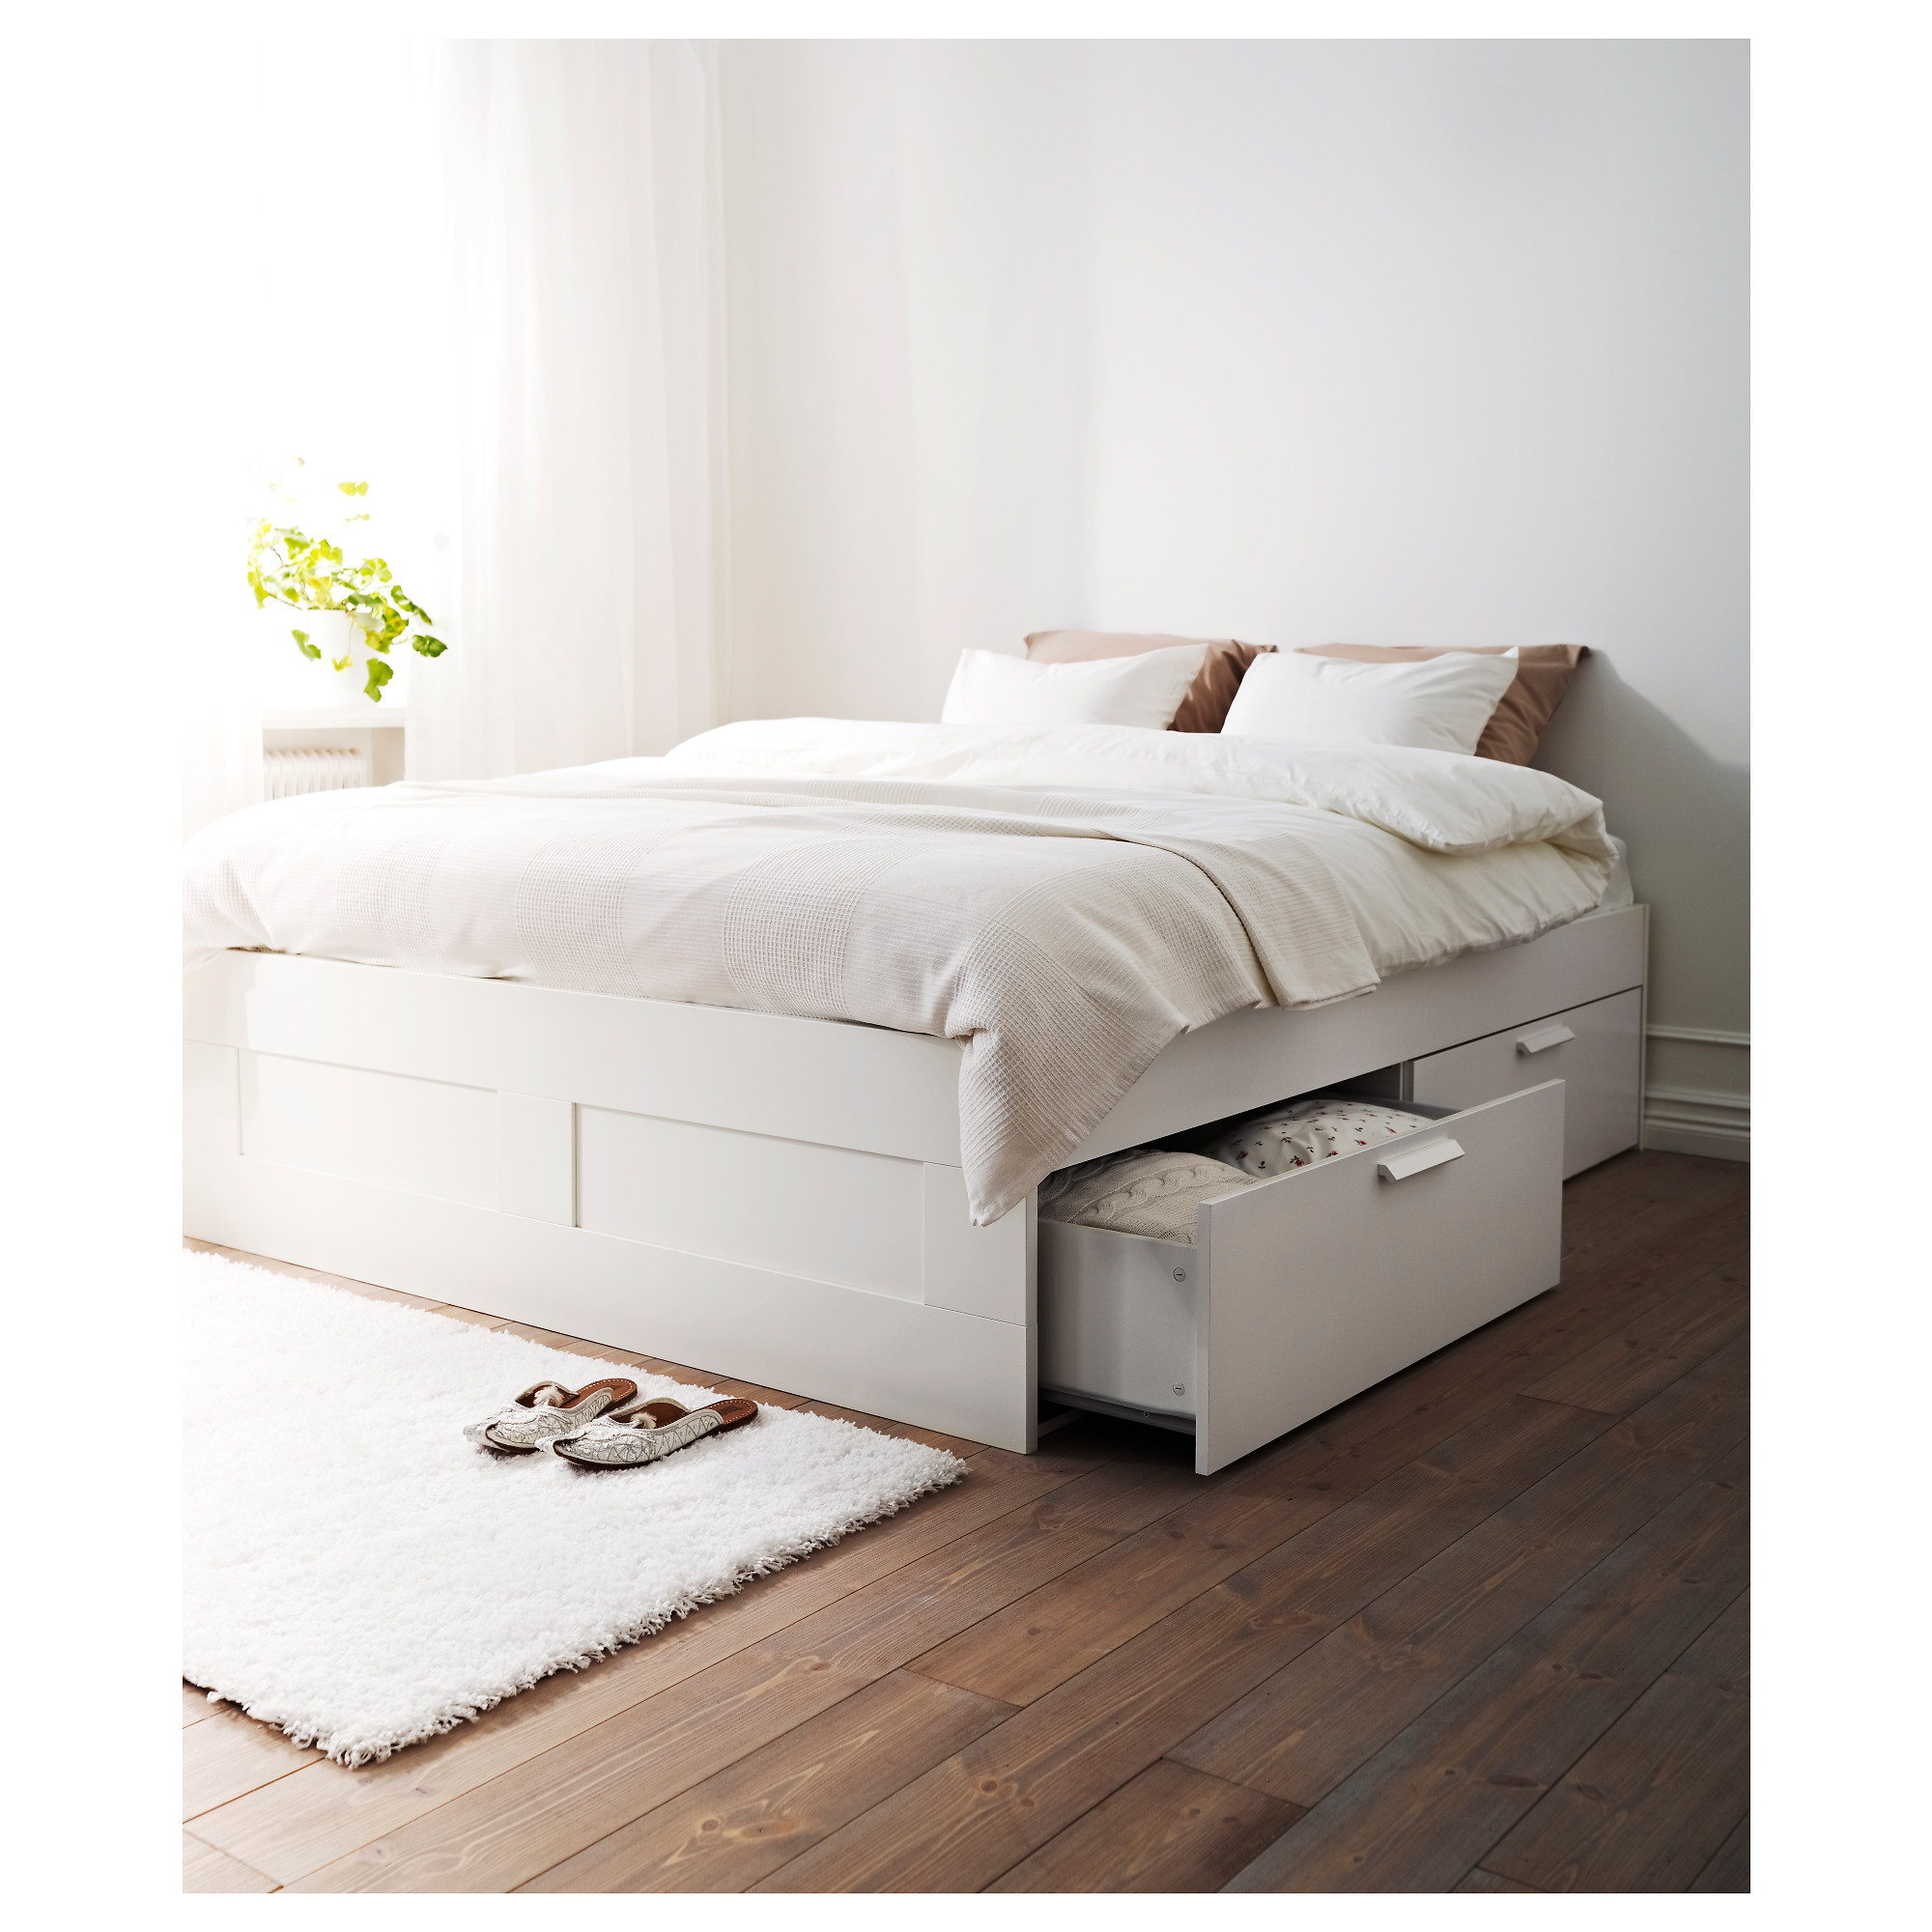 brimnes bed frame with storage queen ikea - White Queen Bed Frame